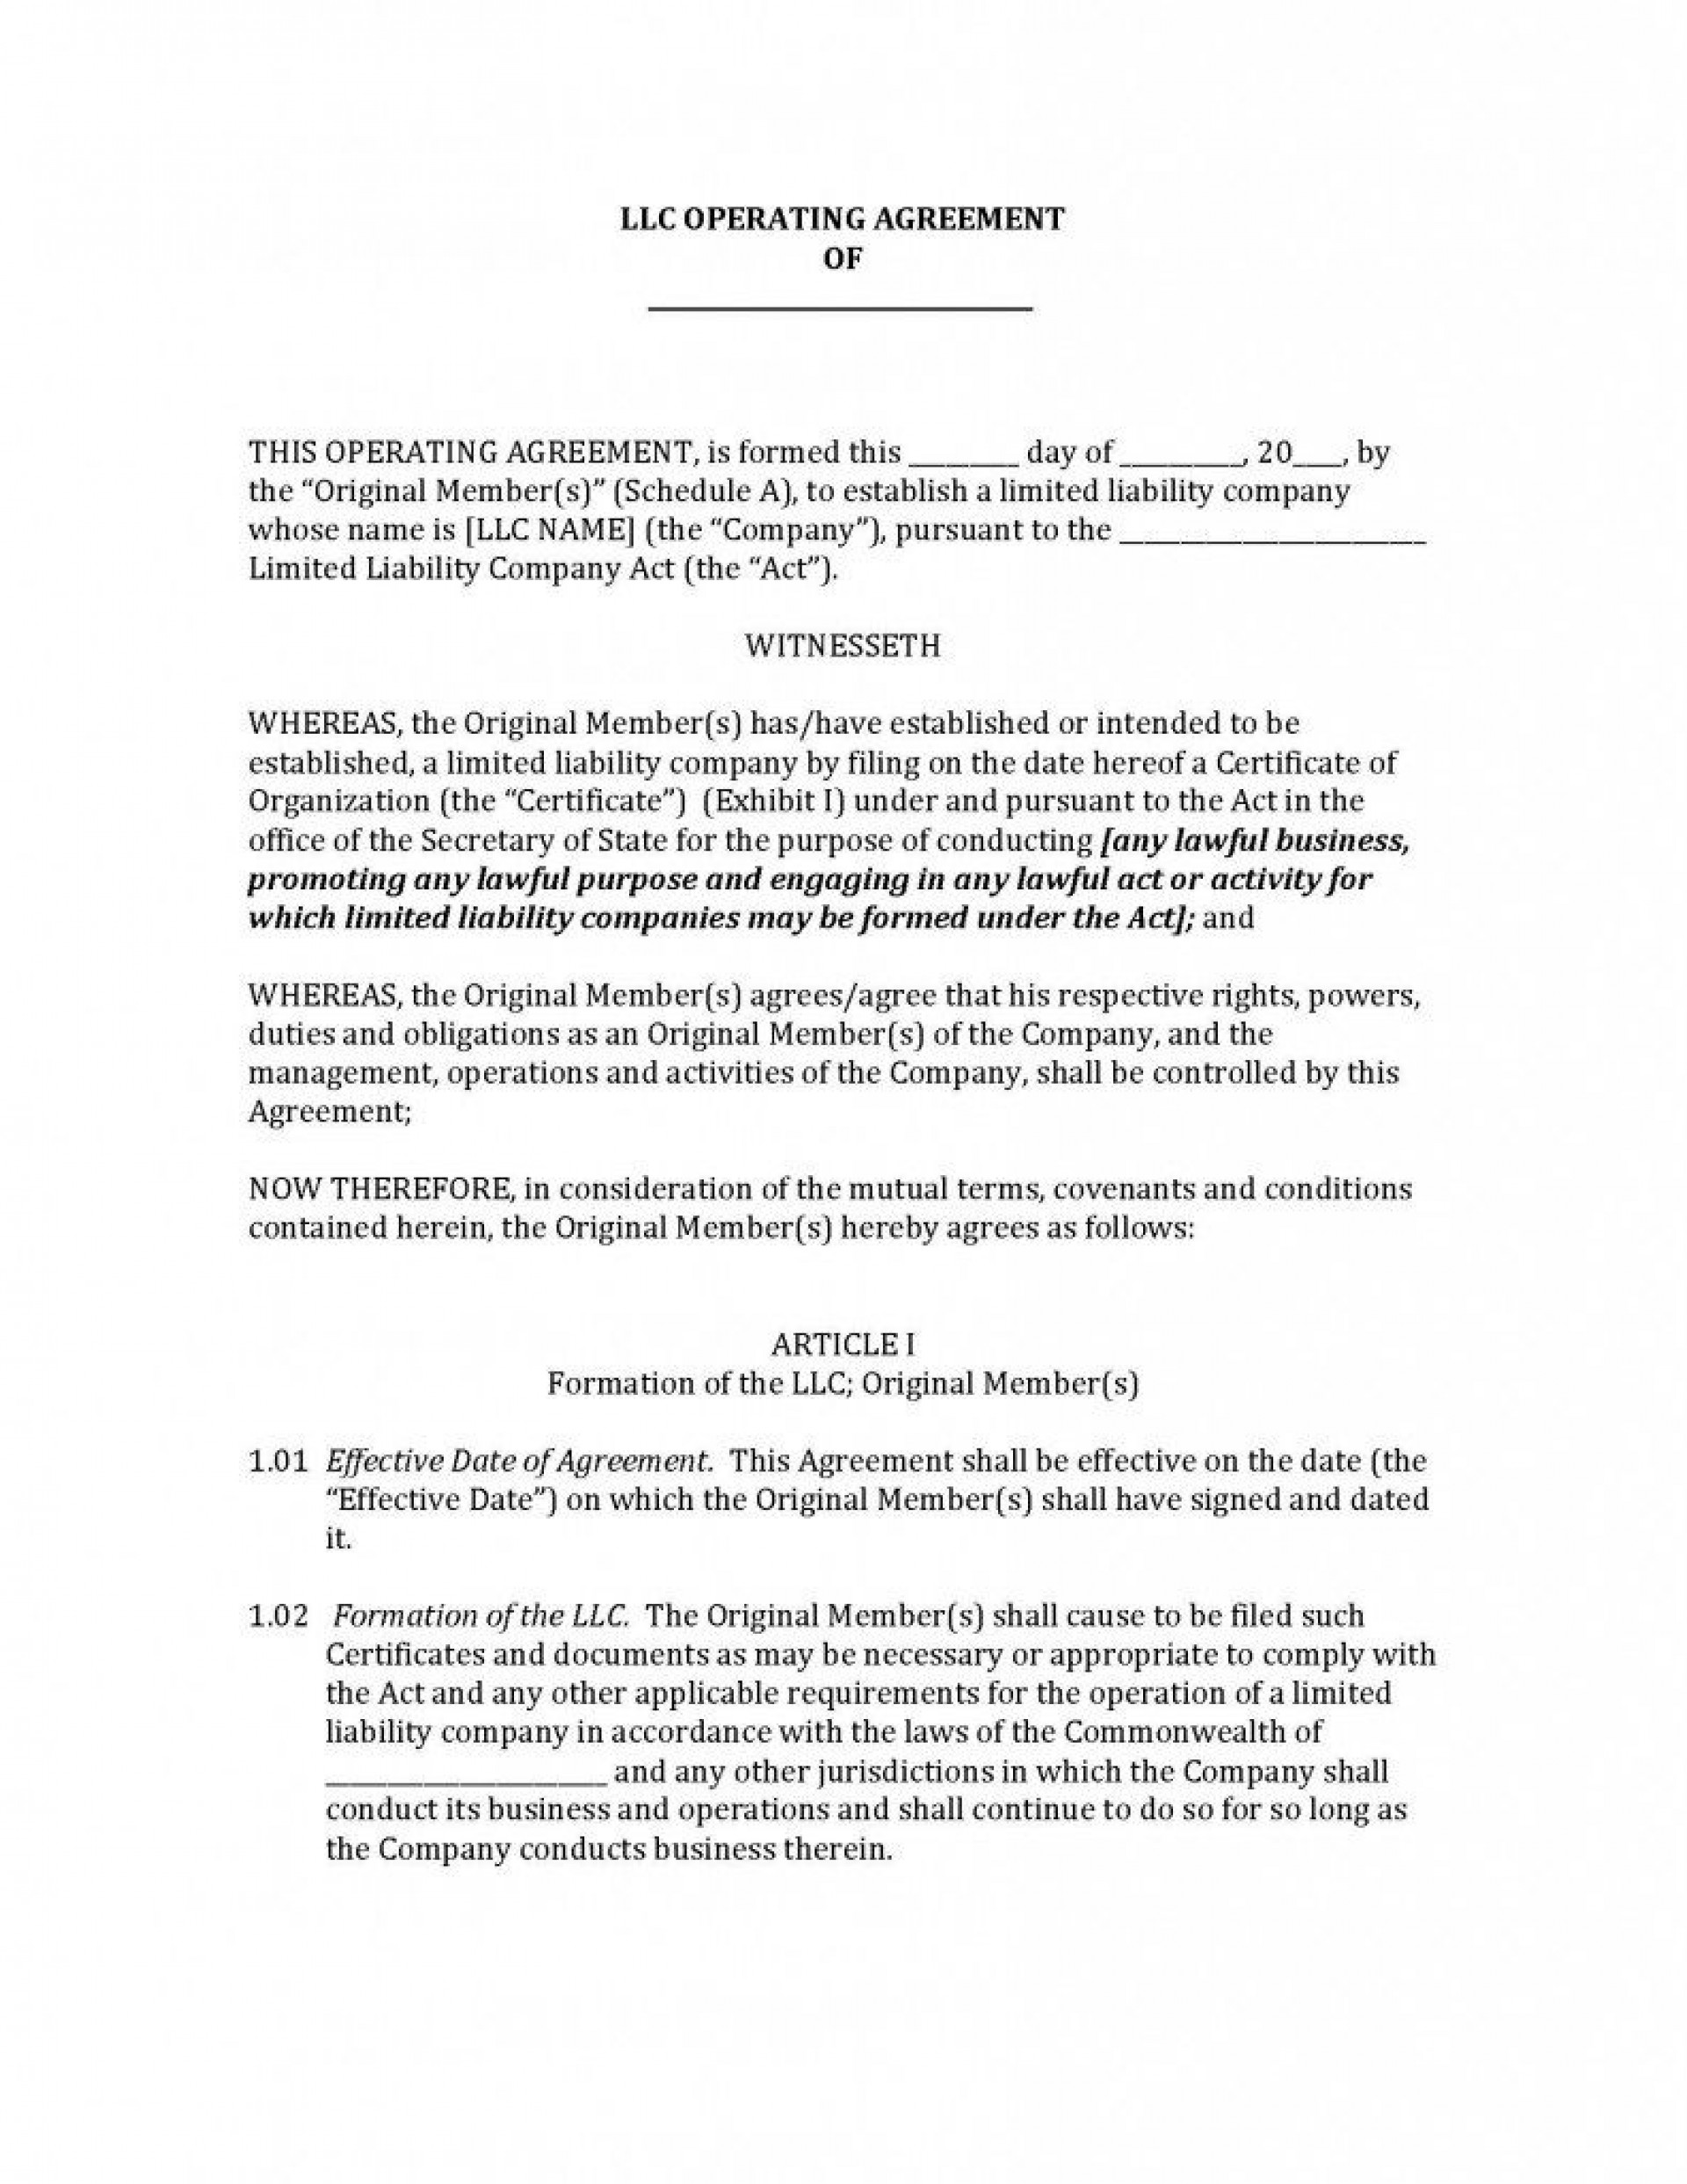 005 Formidable Operating Agreement Template For Llc Highest Quality  Form Florida Texa1920